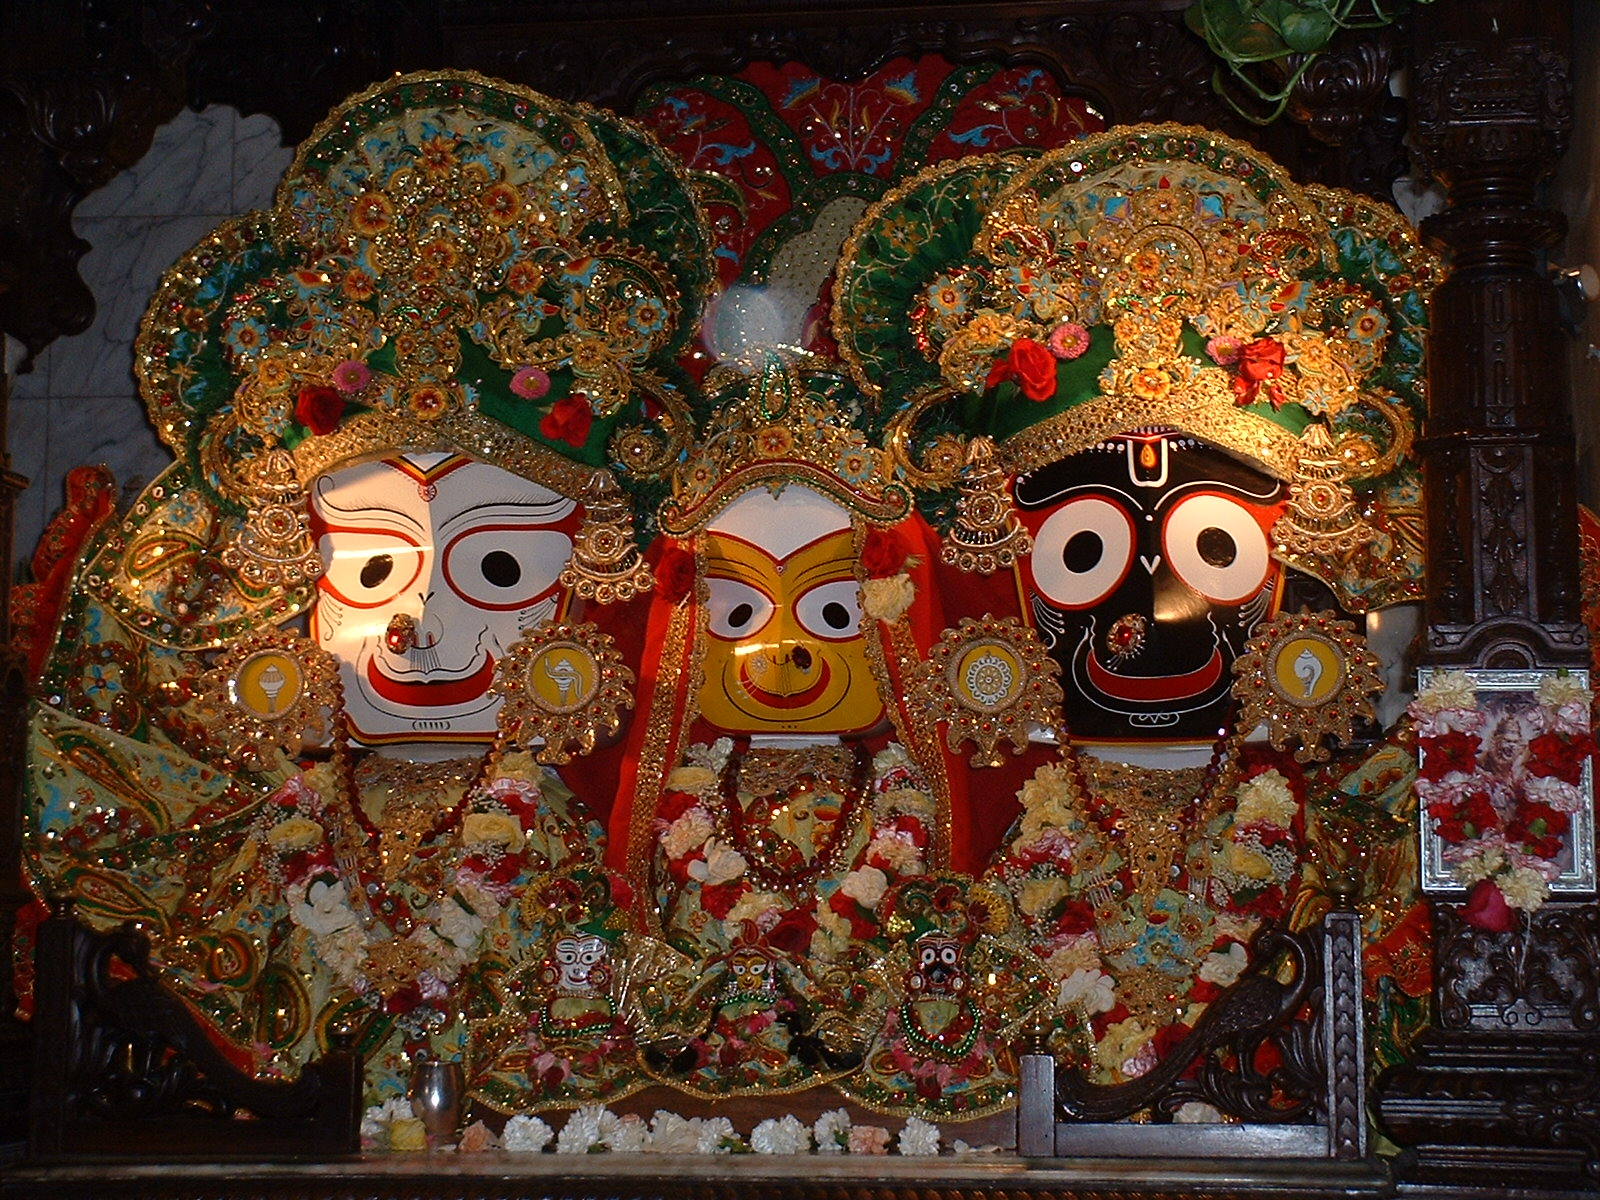 Lord Jagannath Is On The Right With His Sister Subhadra In The Middle And His